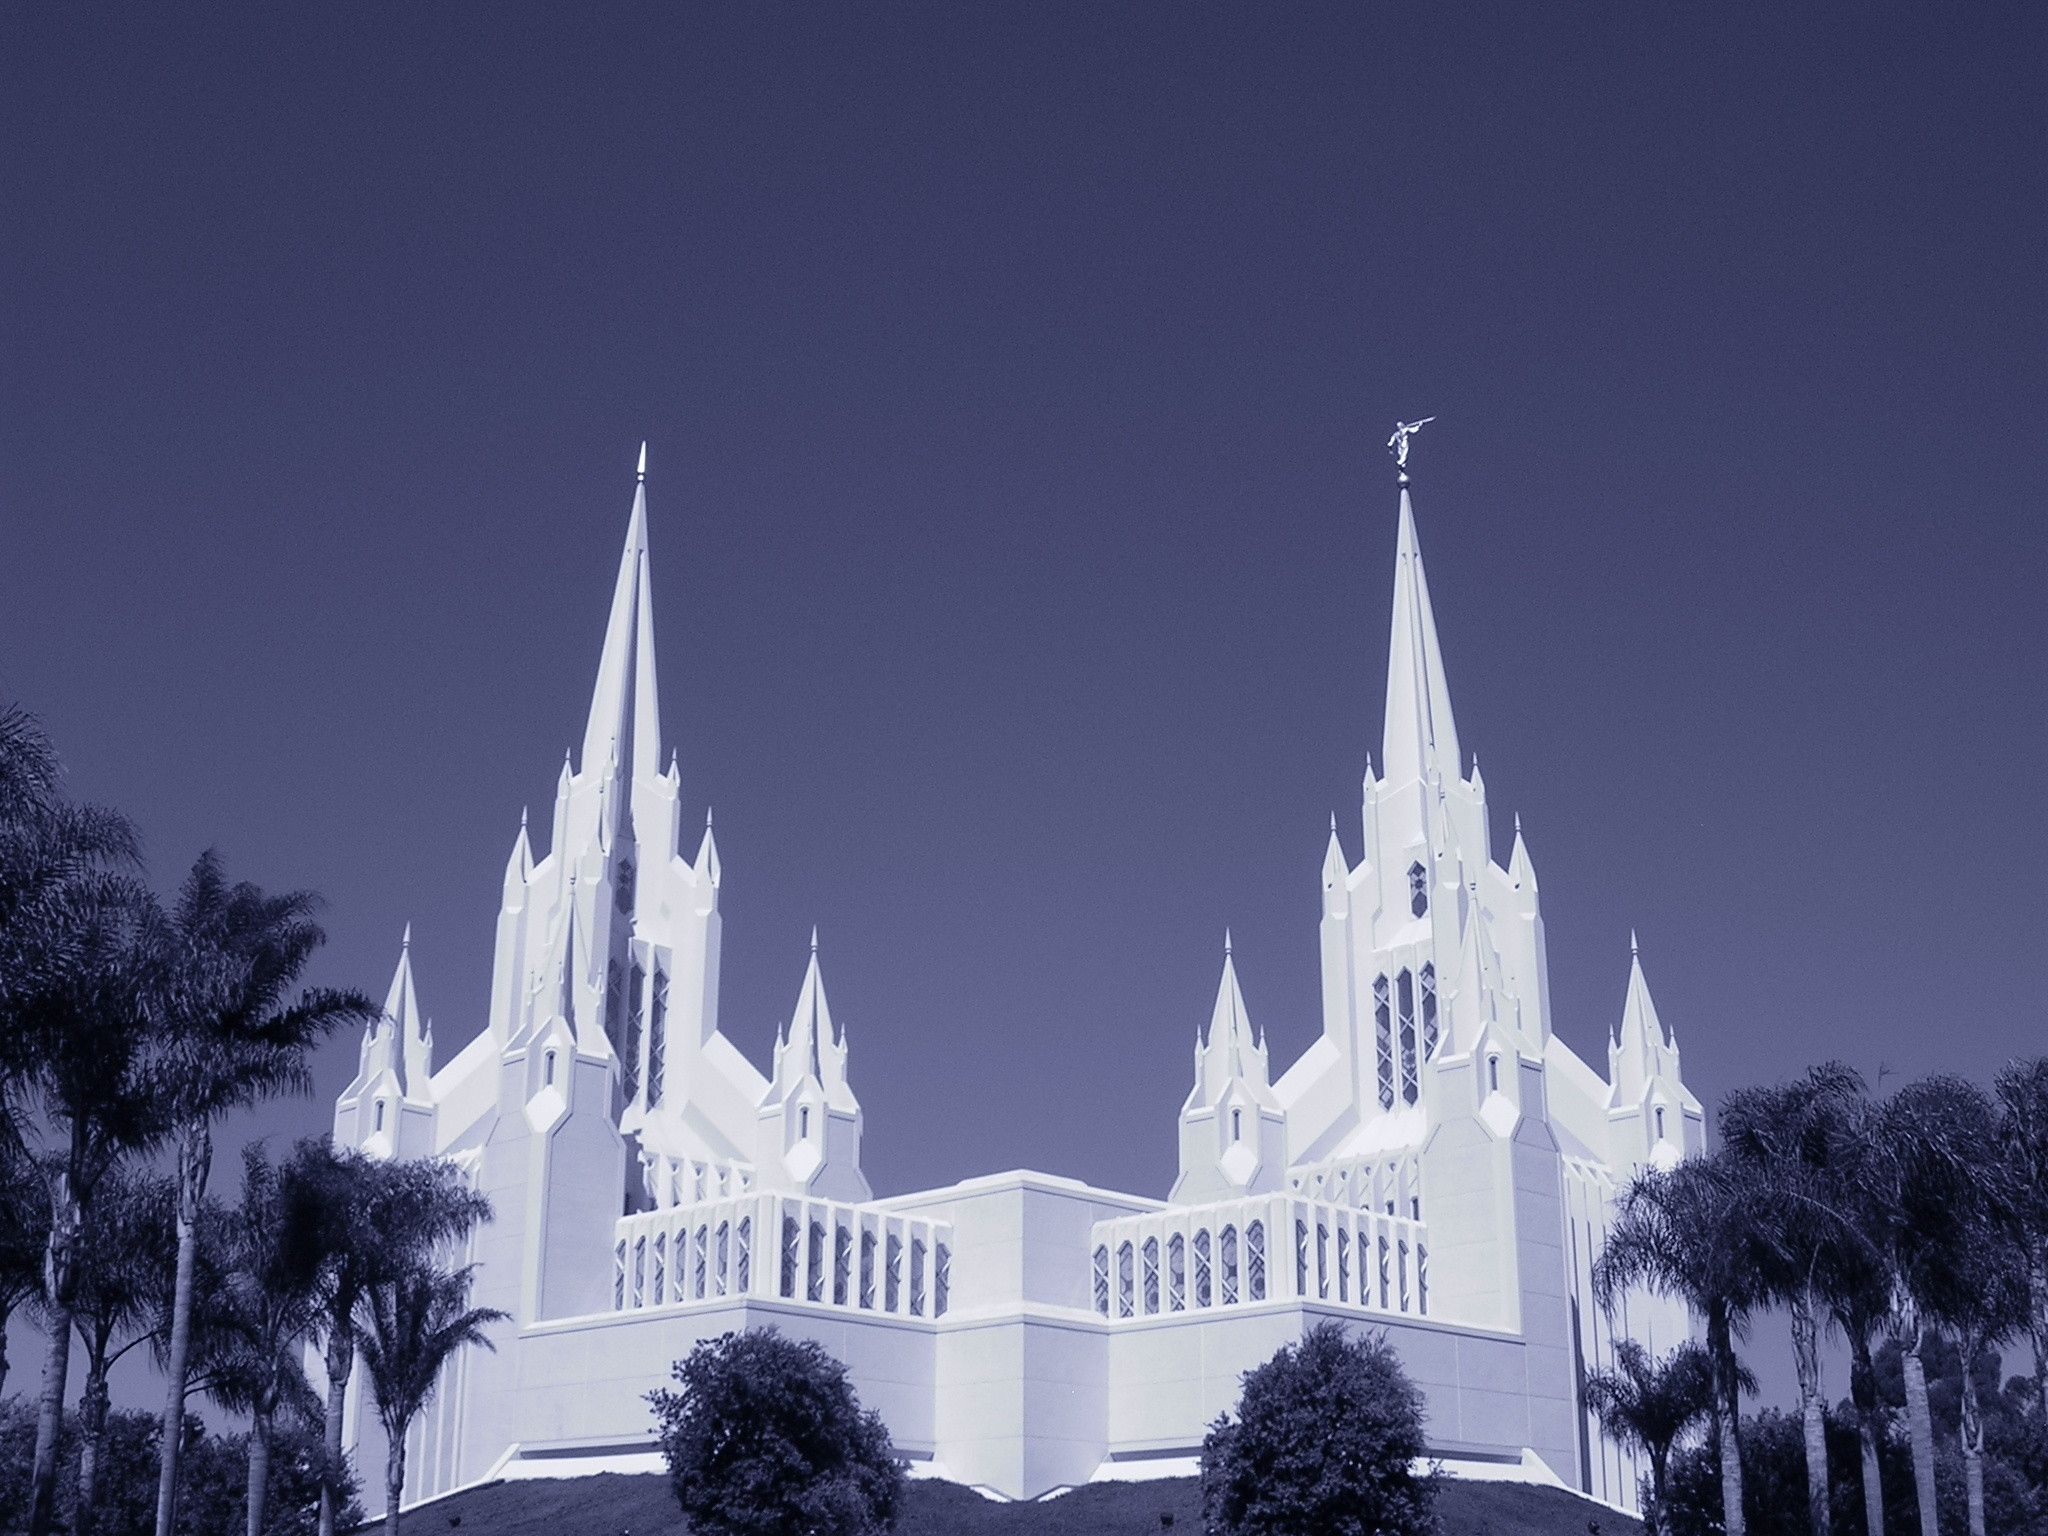 Lds temple wallpaper 65 images - Lds temple wallpaper ...